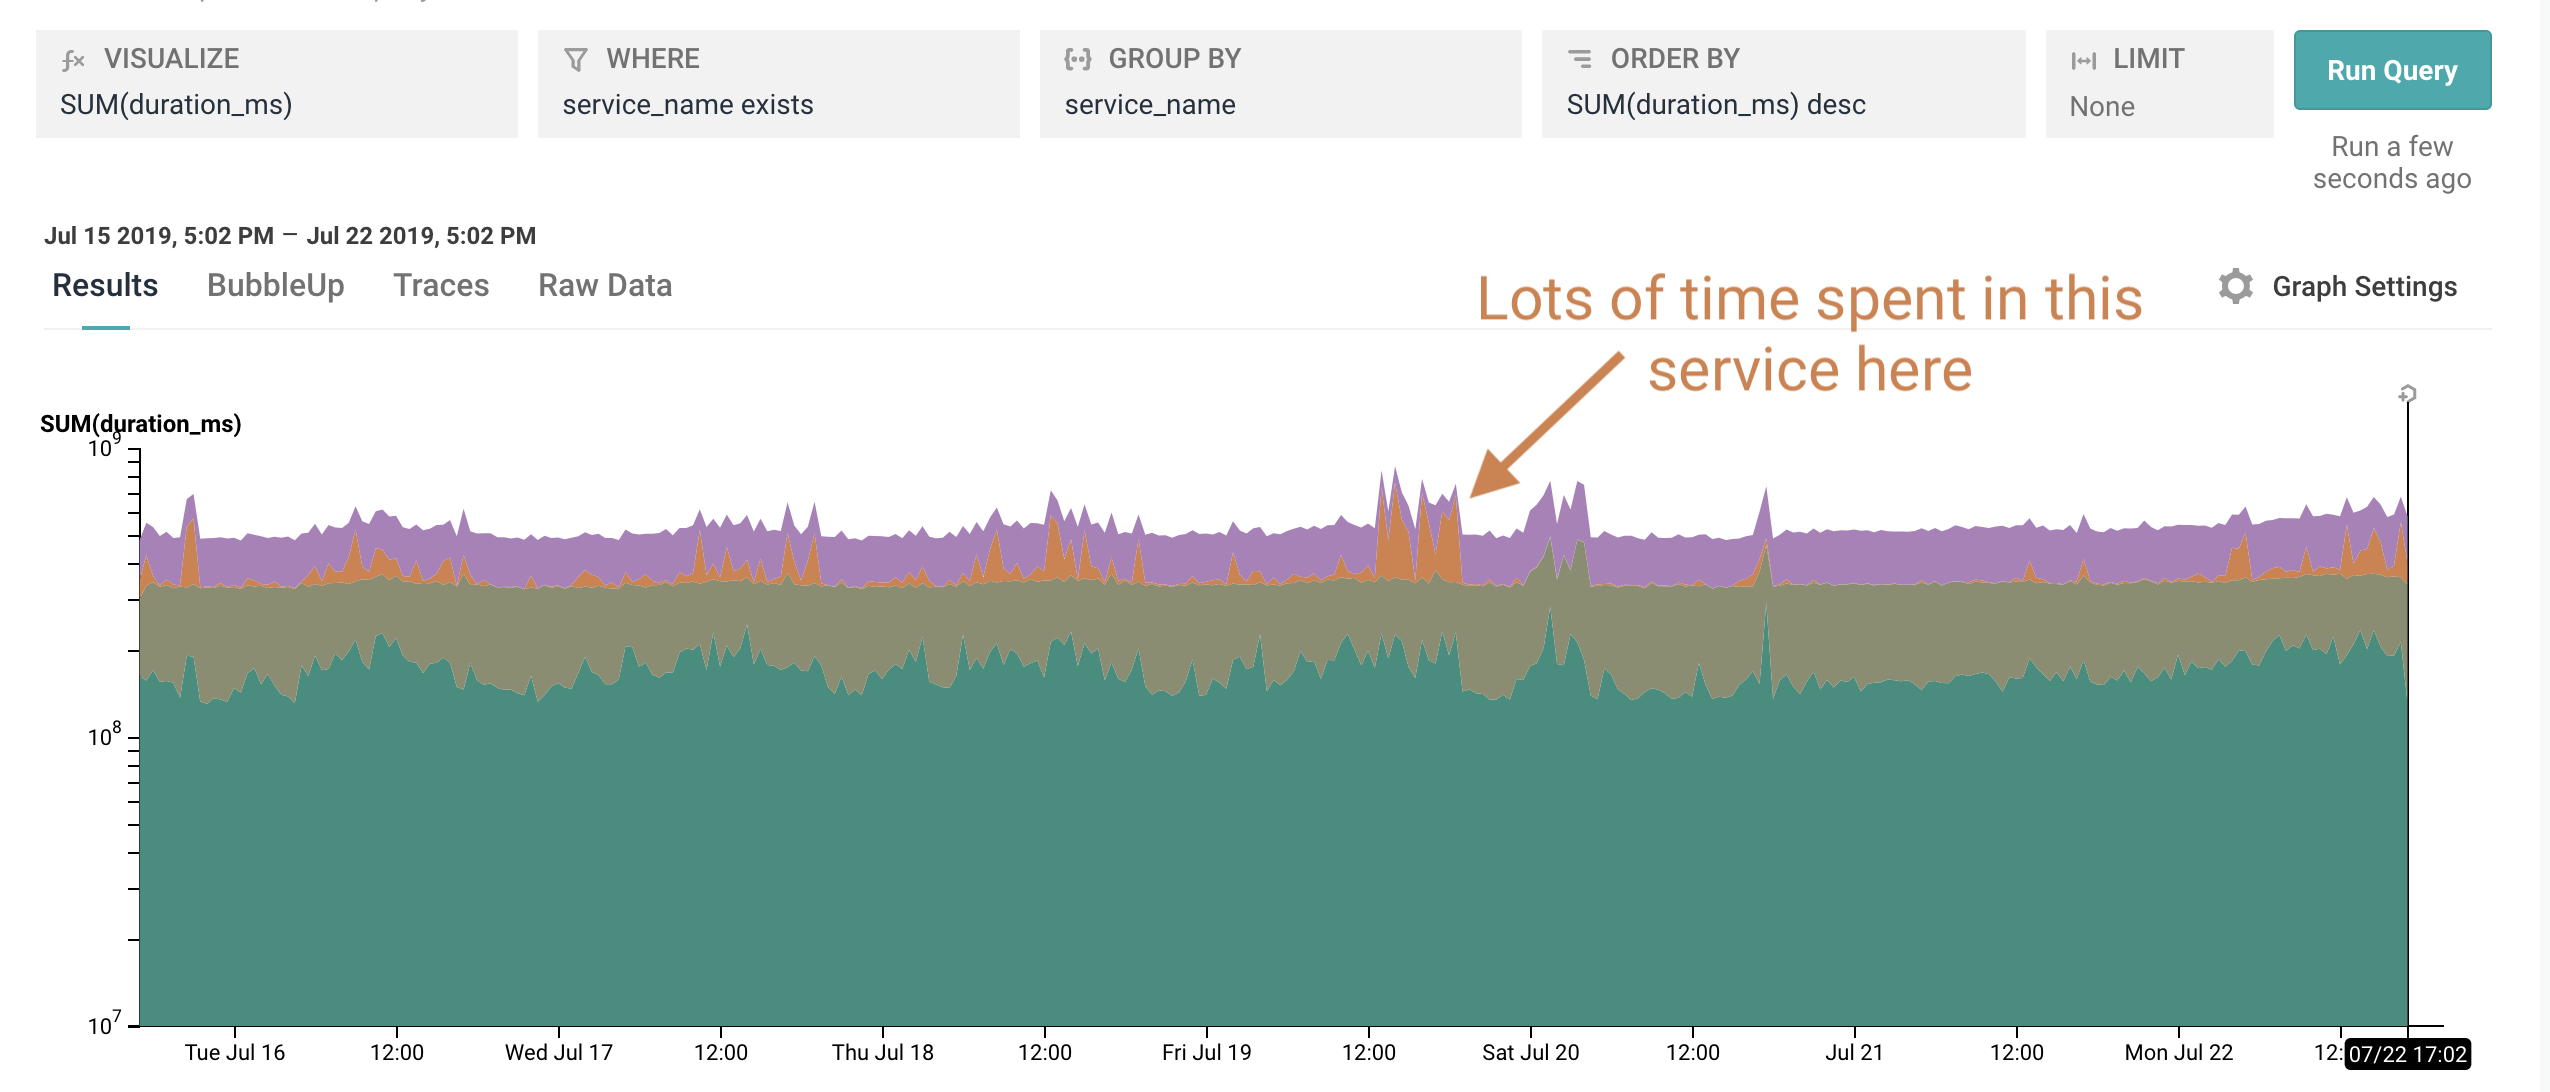 Querying total time spent in a service